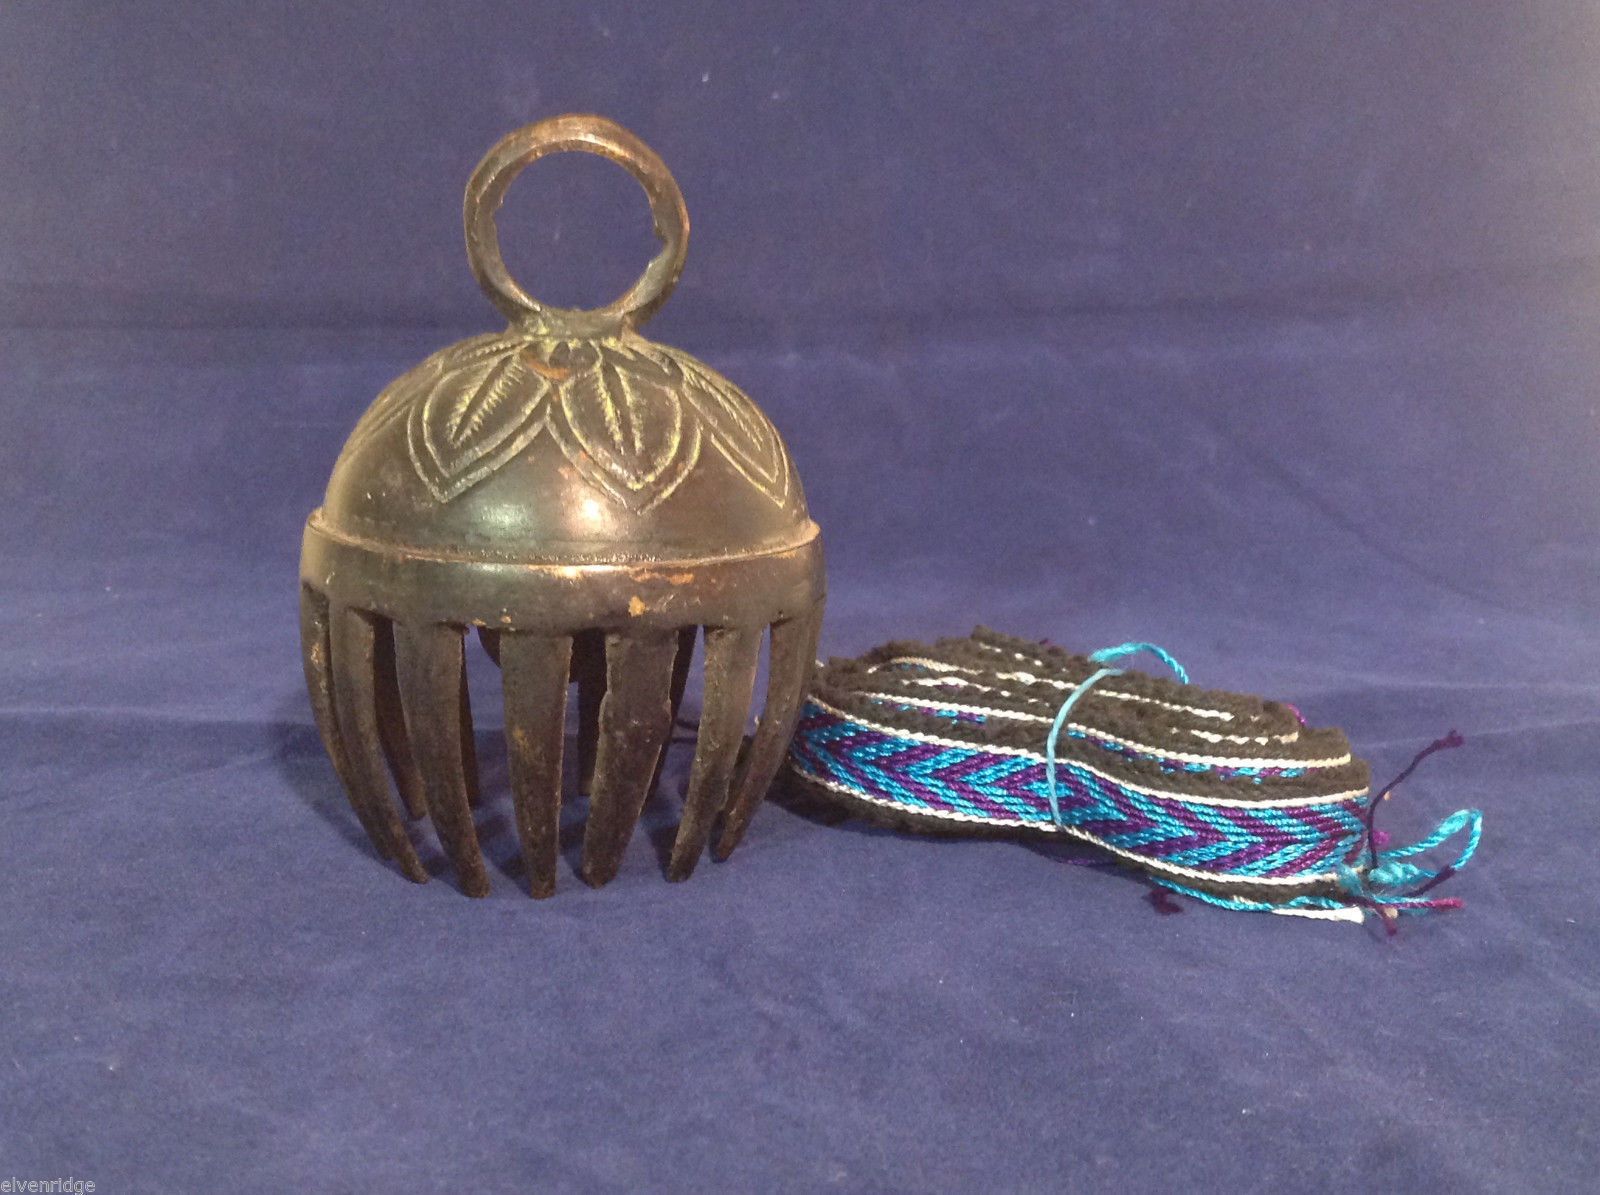 "Large Ornate Tibetan Cowbell Cow Bell w/ Colorful Hand-Woven Strap 5"" x 10"" #2"